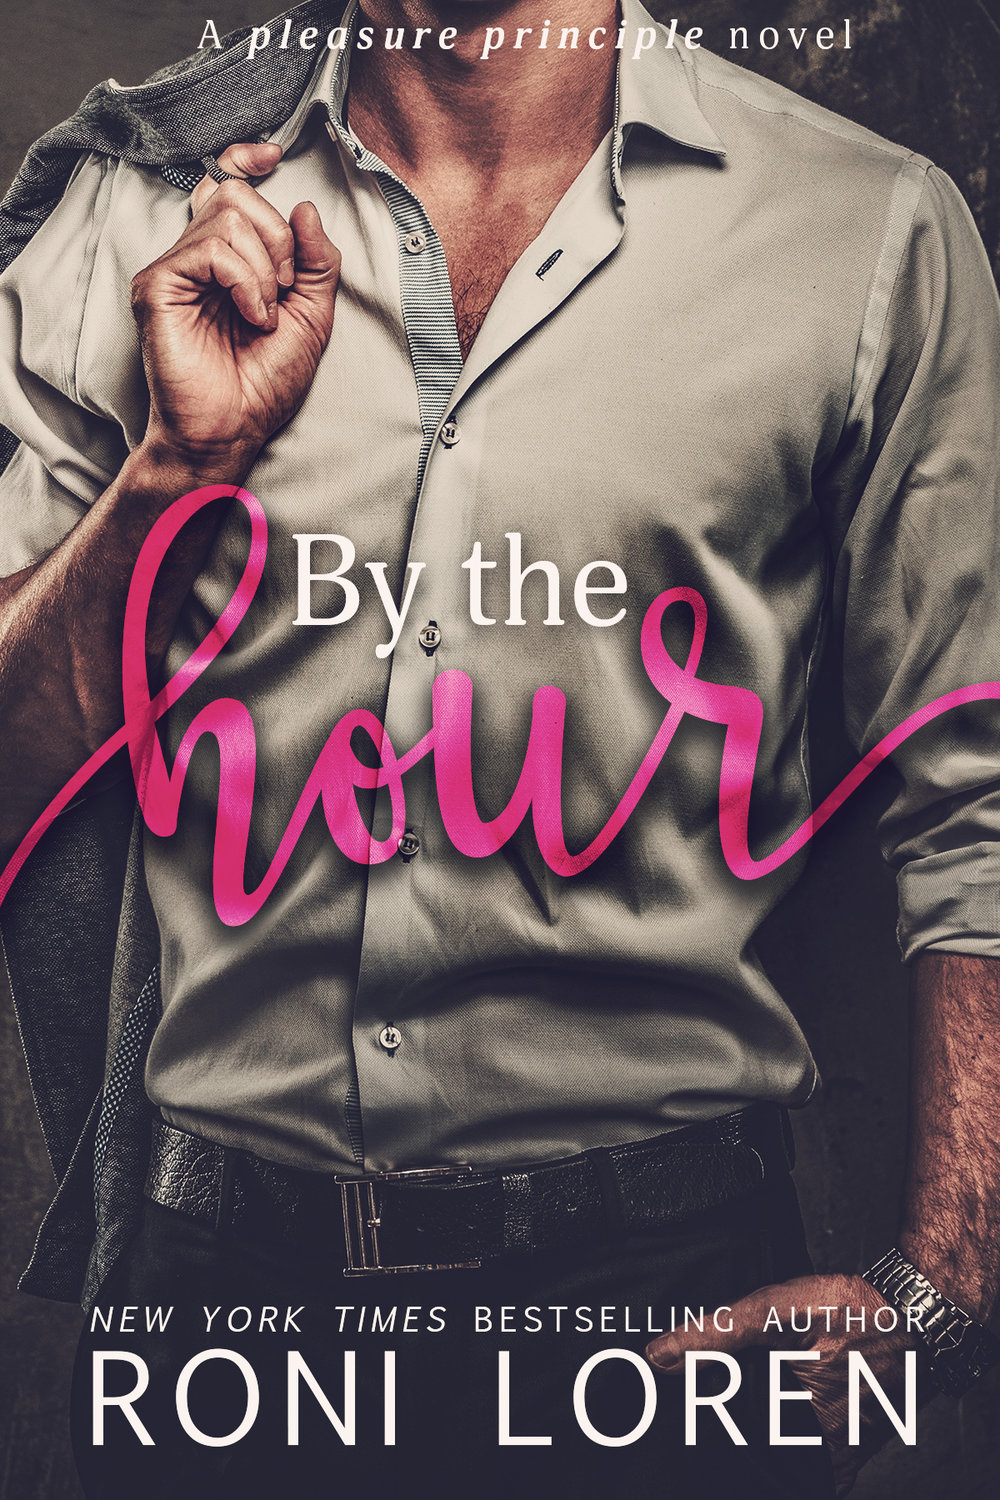 By the Hour - Book 2 in the Pleasure Principle series! Find out more.